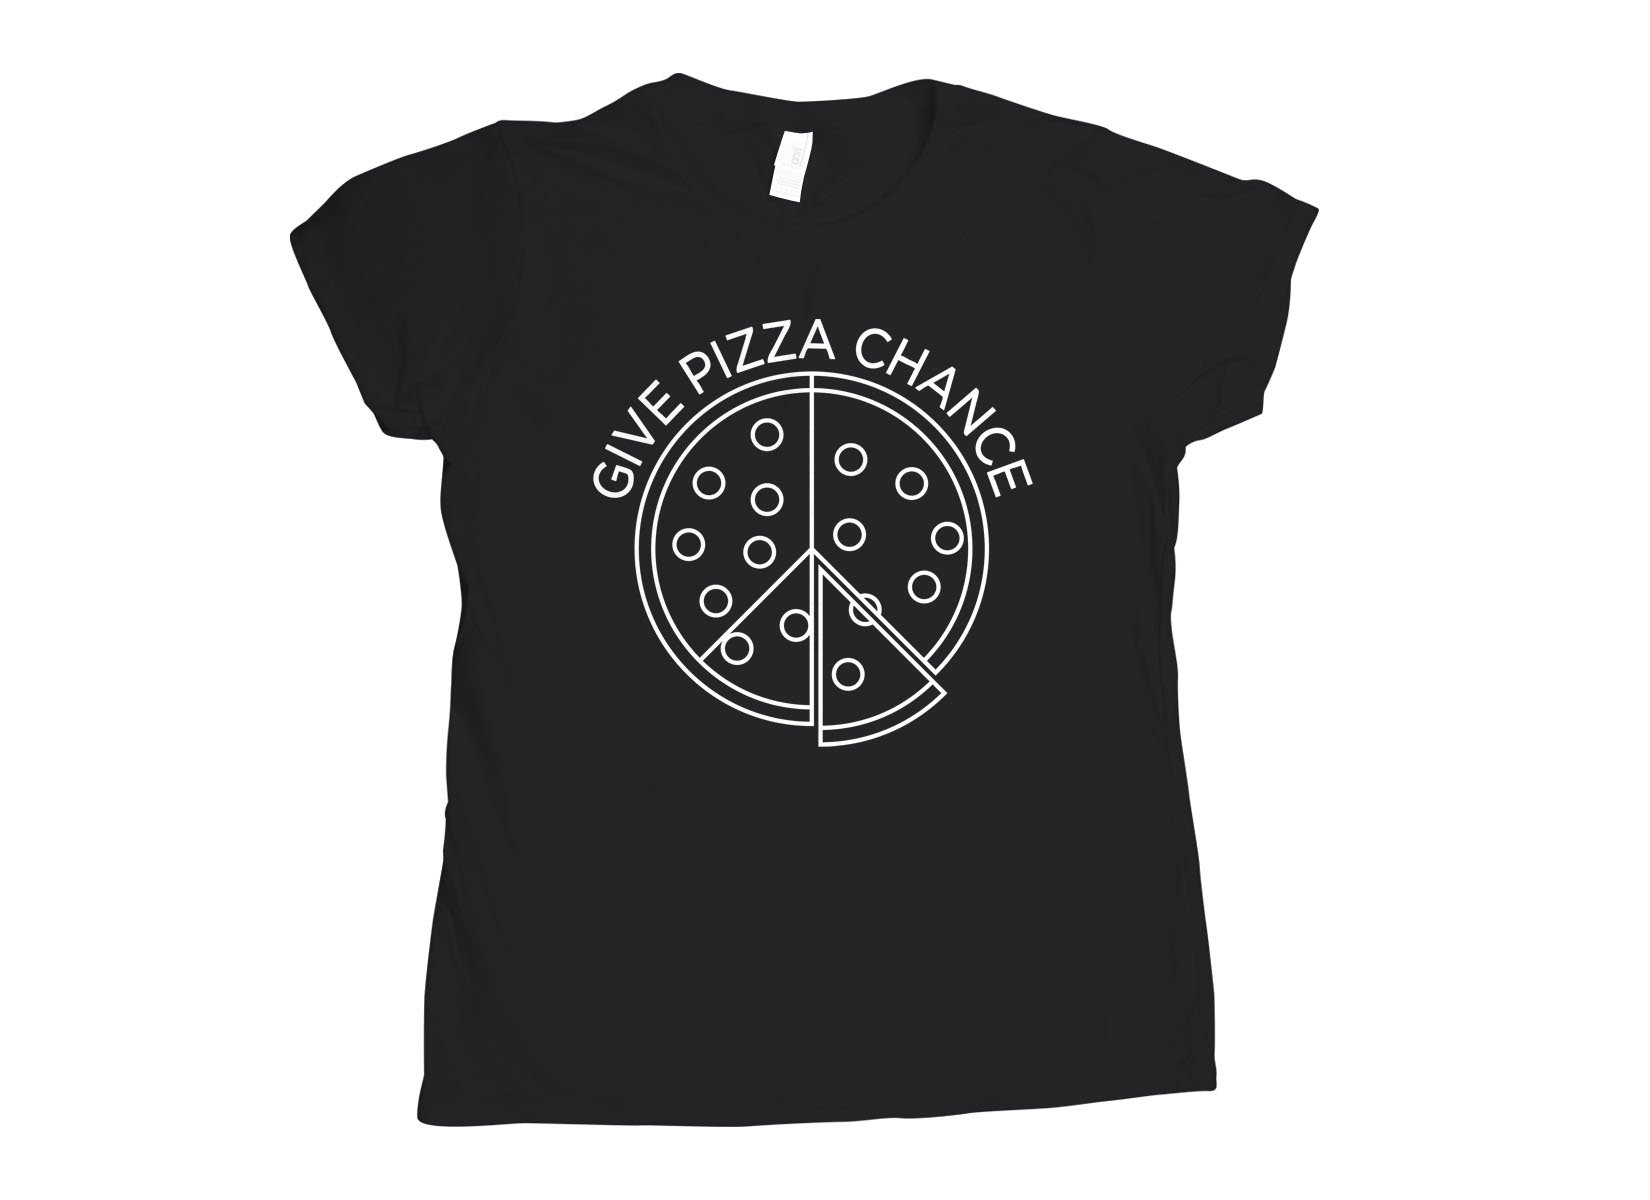 Give Pizza A Chance on Womens T-Shirt